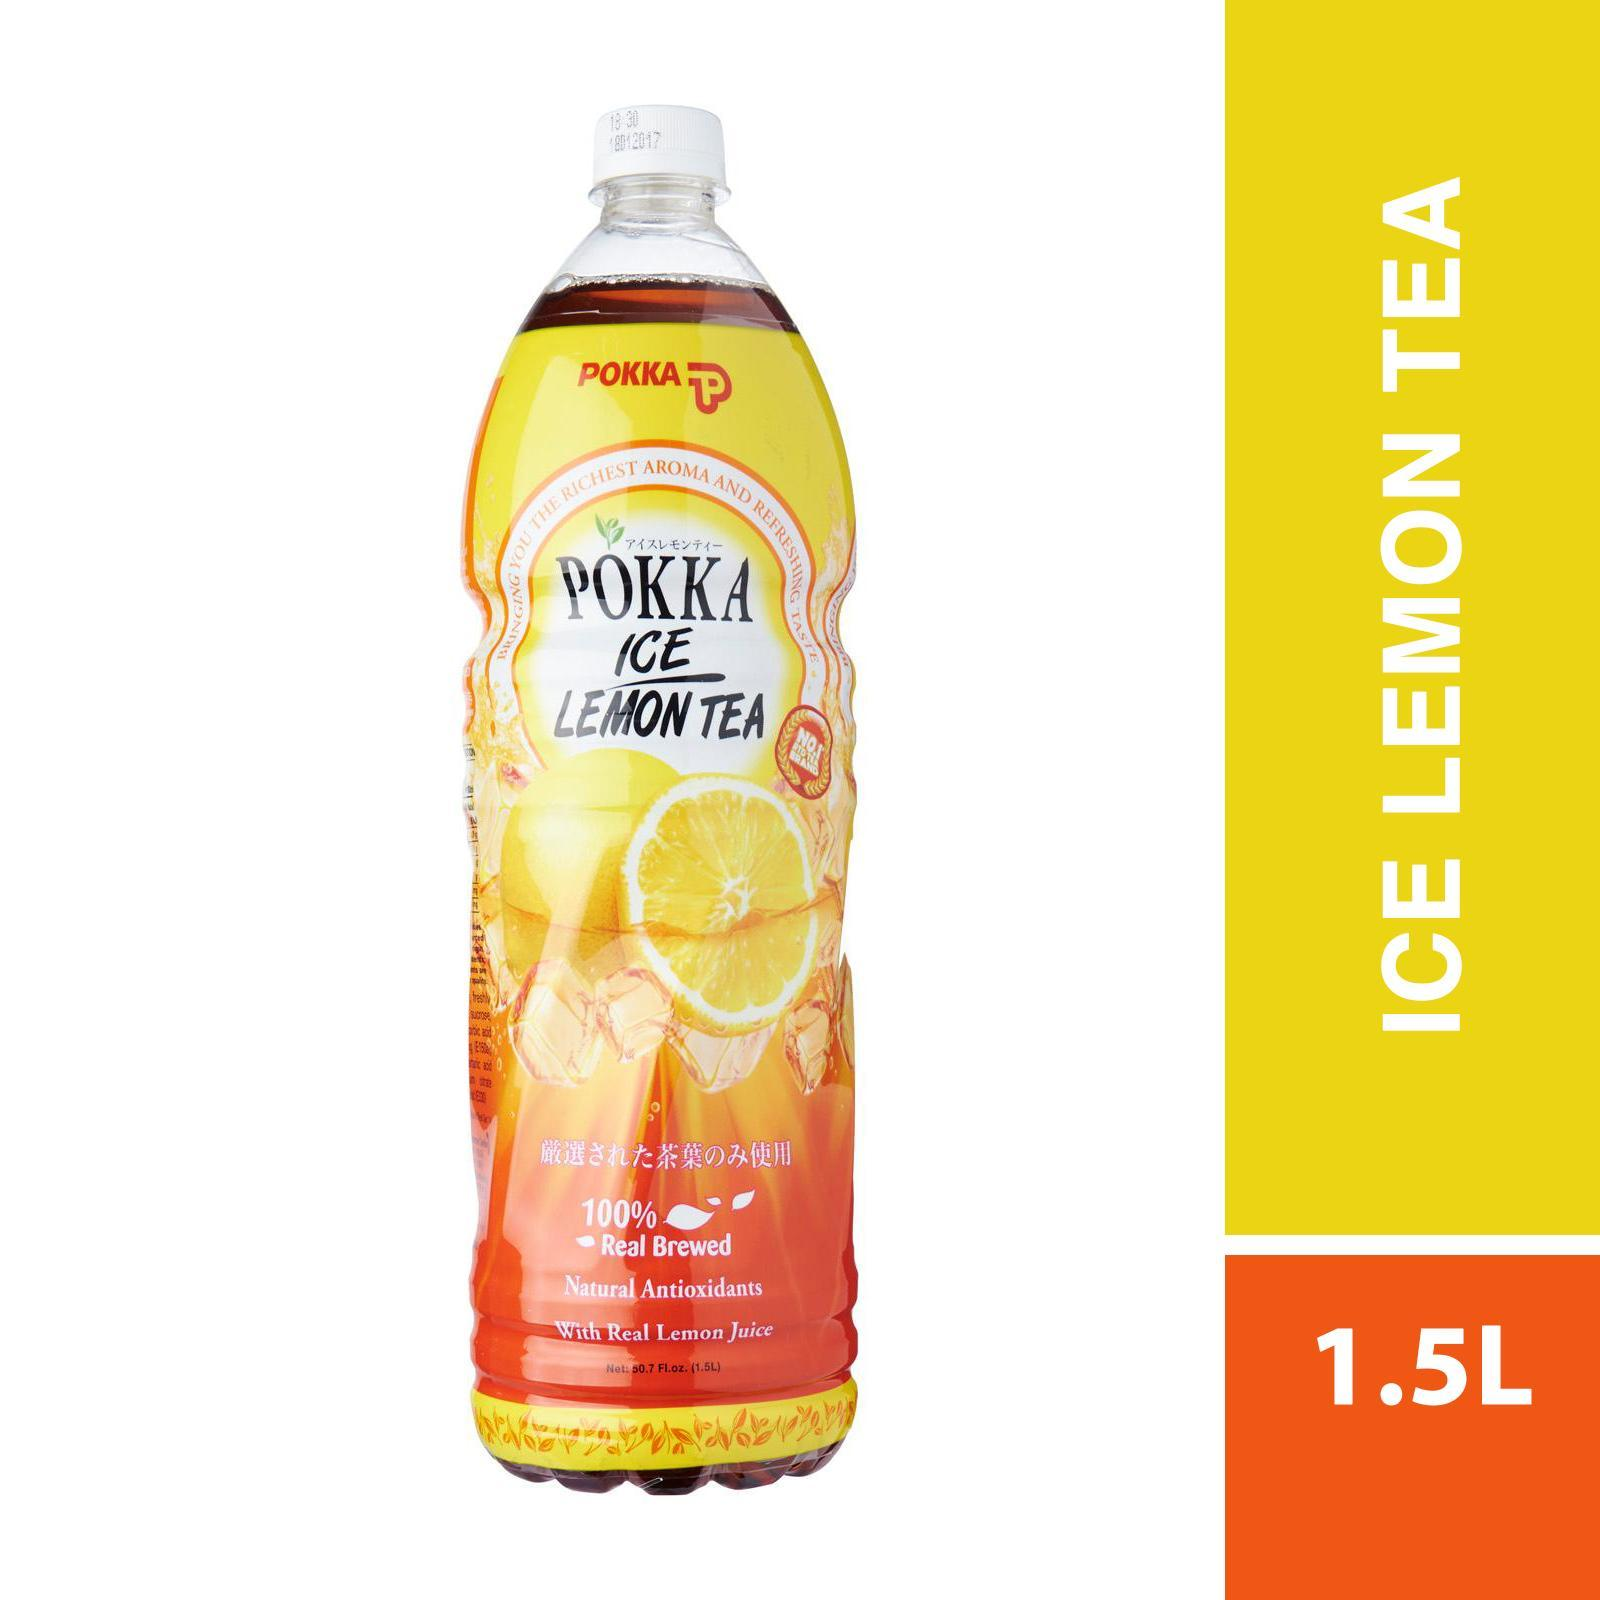 POKKA Lemon Tea 1.5L